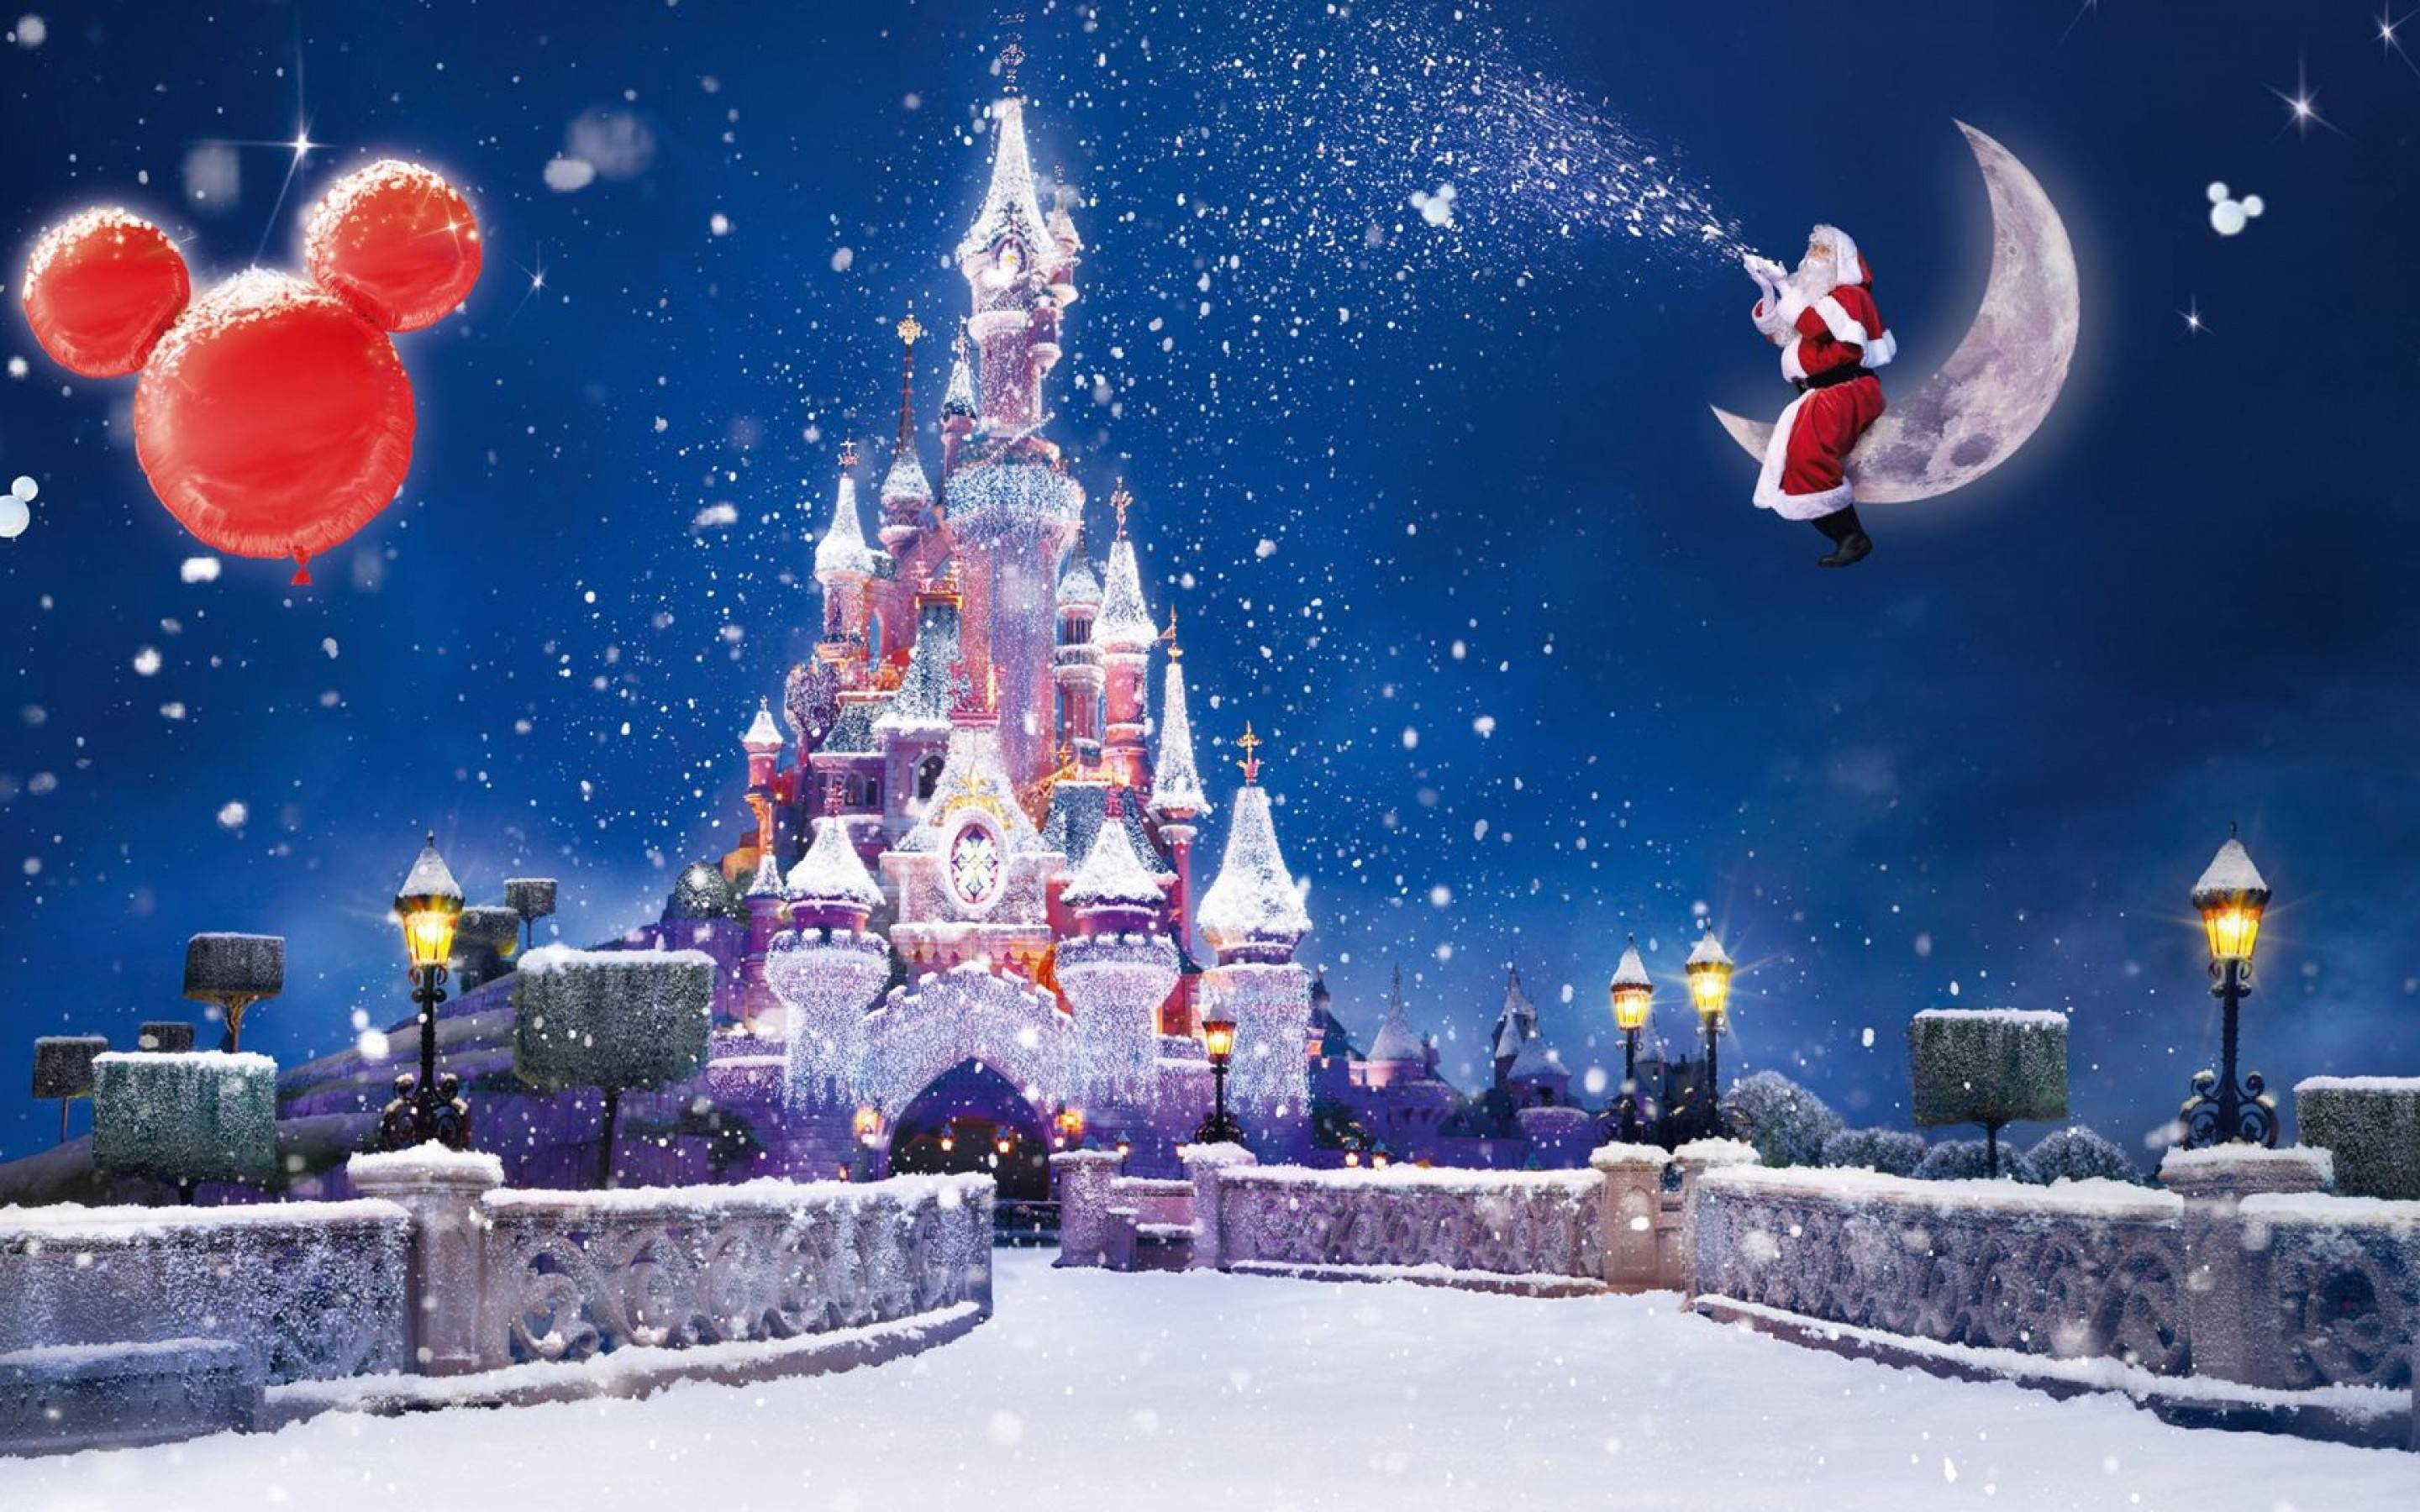 Walt Disney Christmas Wallpaper.Disney Christmas Backgrounds Wallpaper Cave